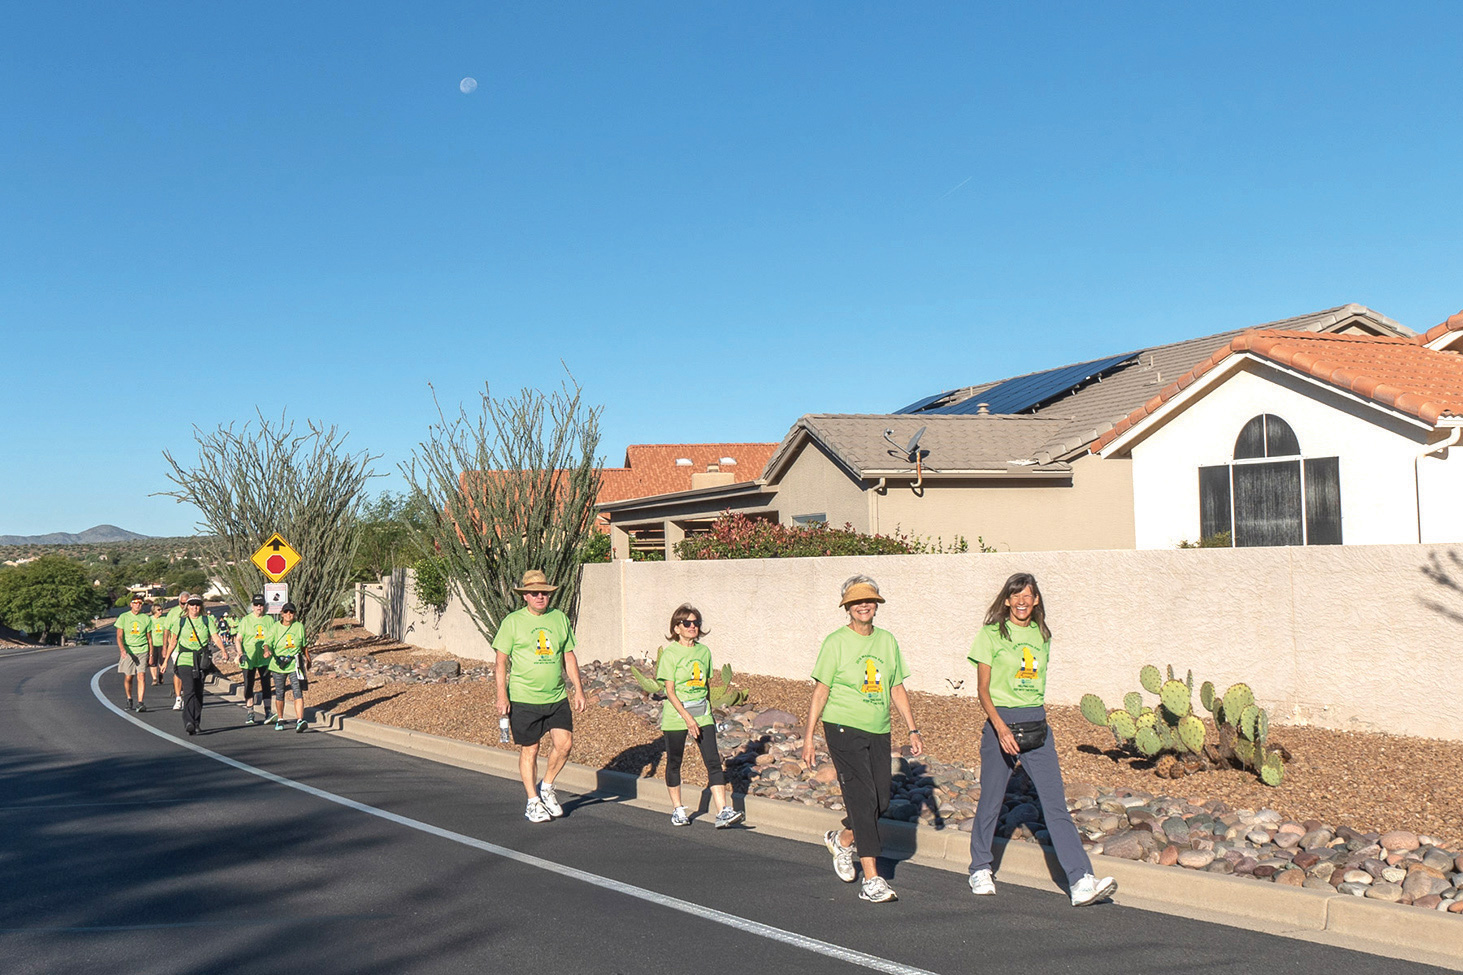 The Annual Walkathon attracts a committed group of participants and volunteers, but COVID-19 has caused the 2020 event to be canceled for the first time in 24 years.